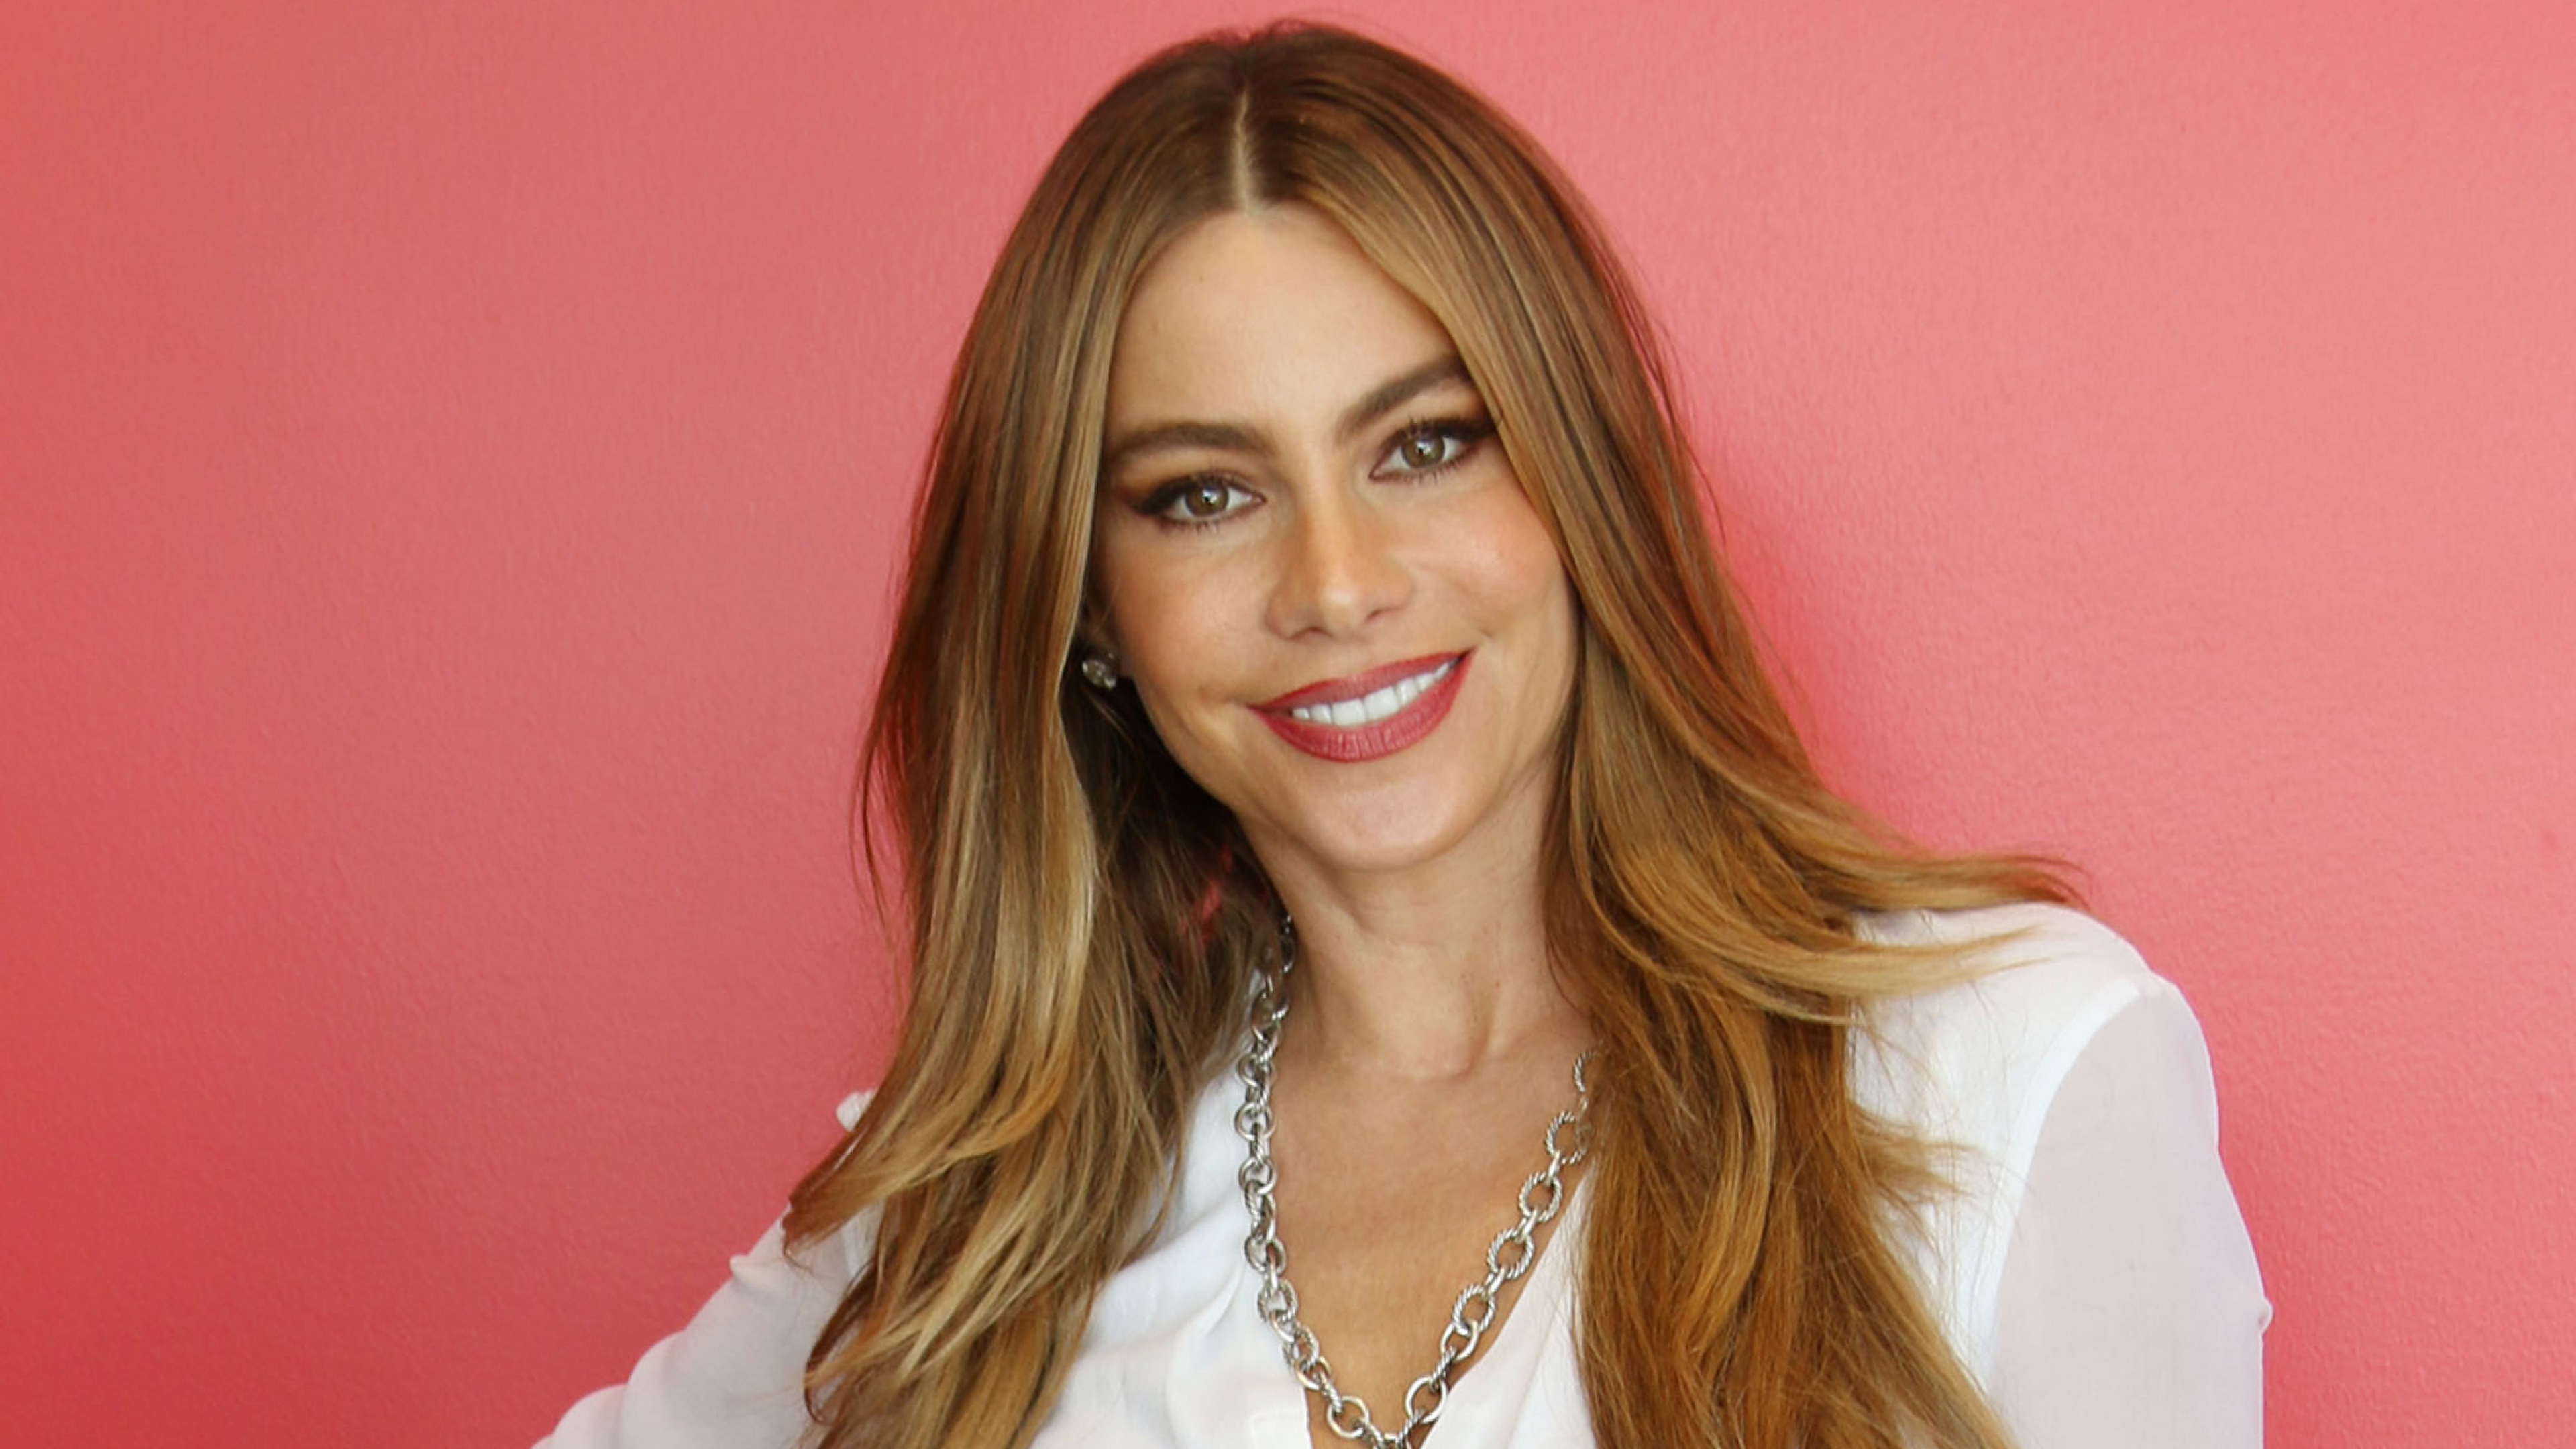 Sofia Vergara Wallpapers And Backgrounds